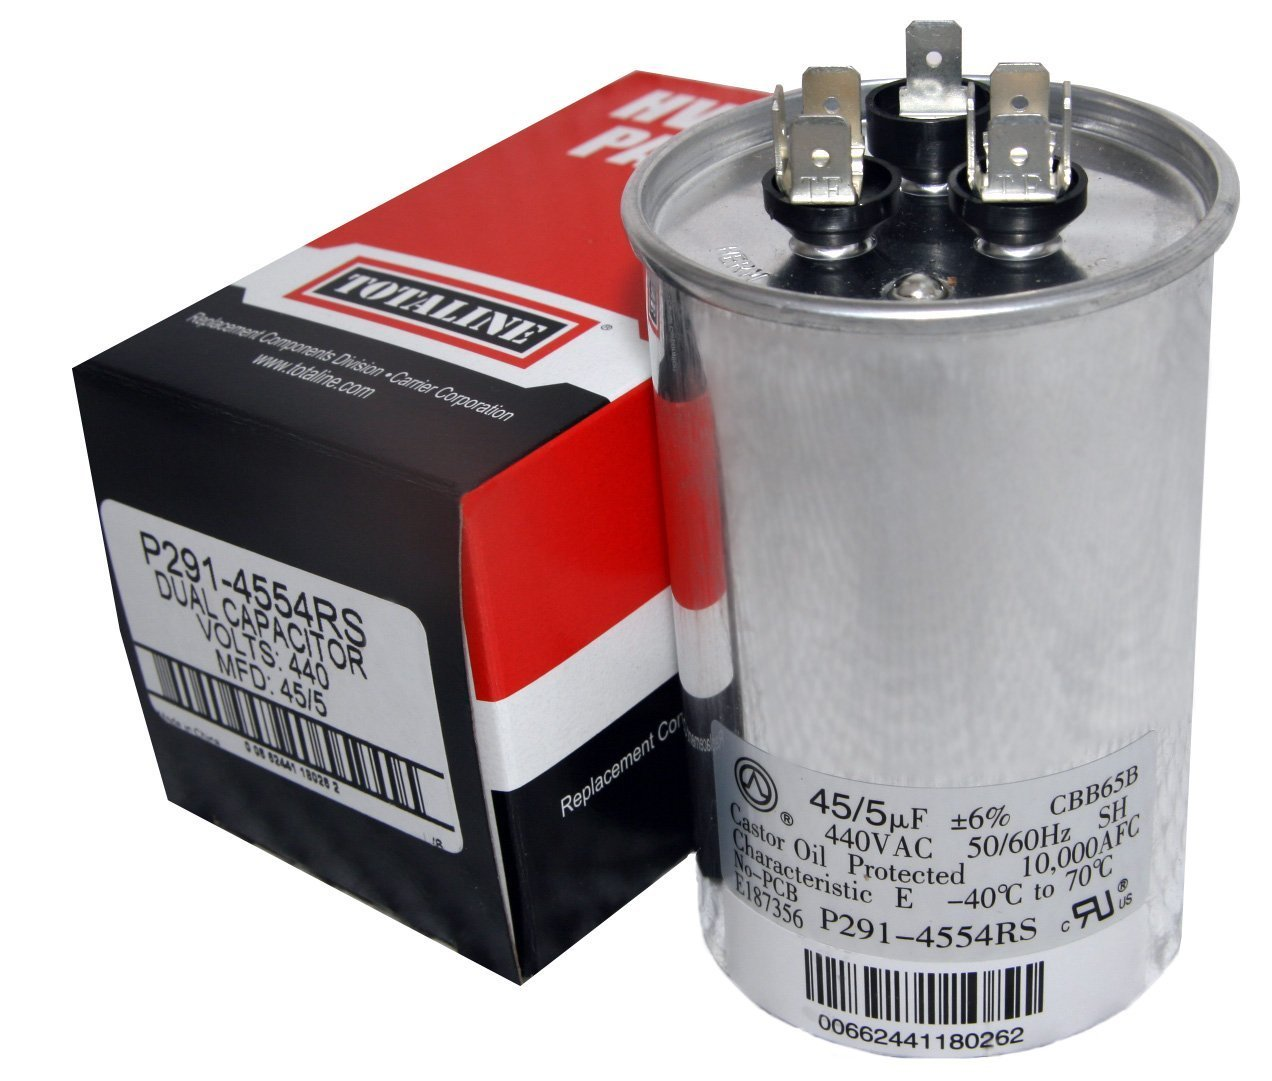 TOTALINE 45 + 5 MFD uf P291-4554RS 370 or 440 Volt Dual Run Round Capacitor made by Carrier for Condenser Straight Cool or Heat Pump Air Conditioner CBB65B